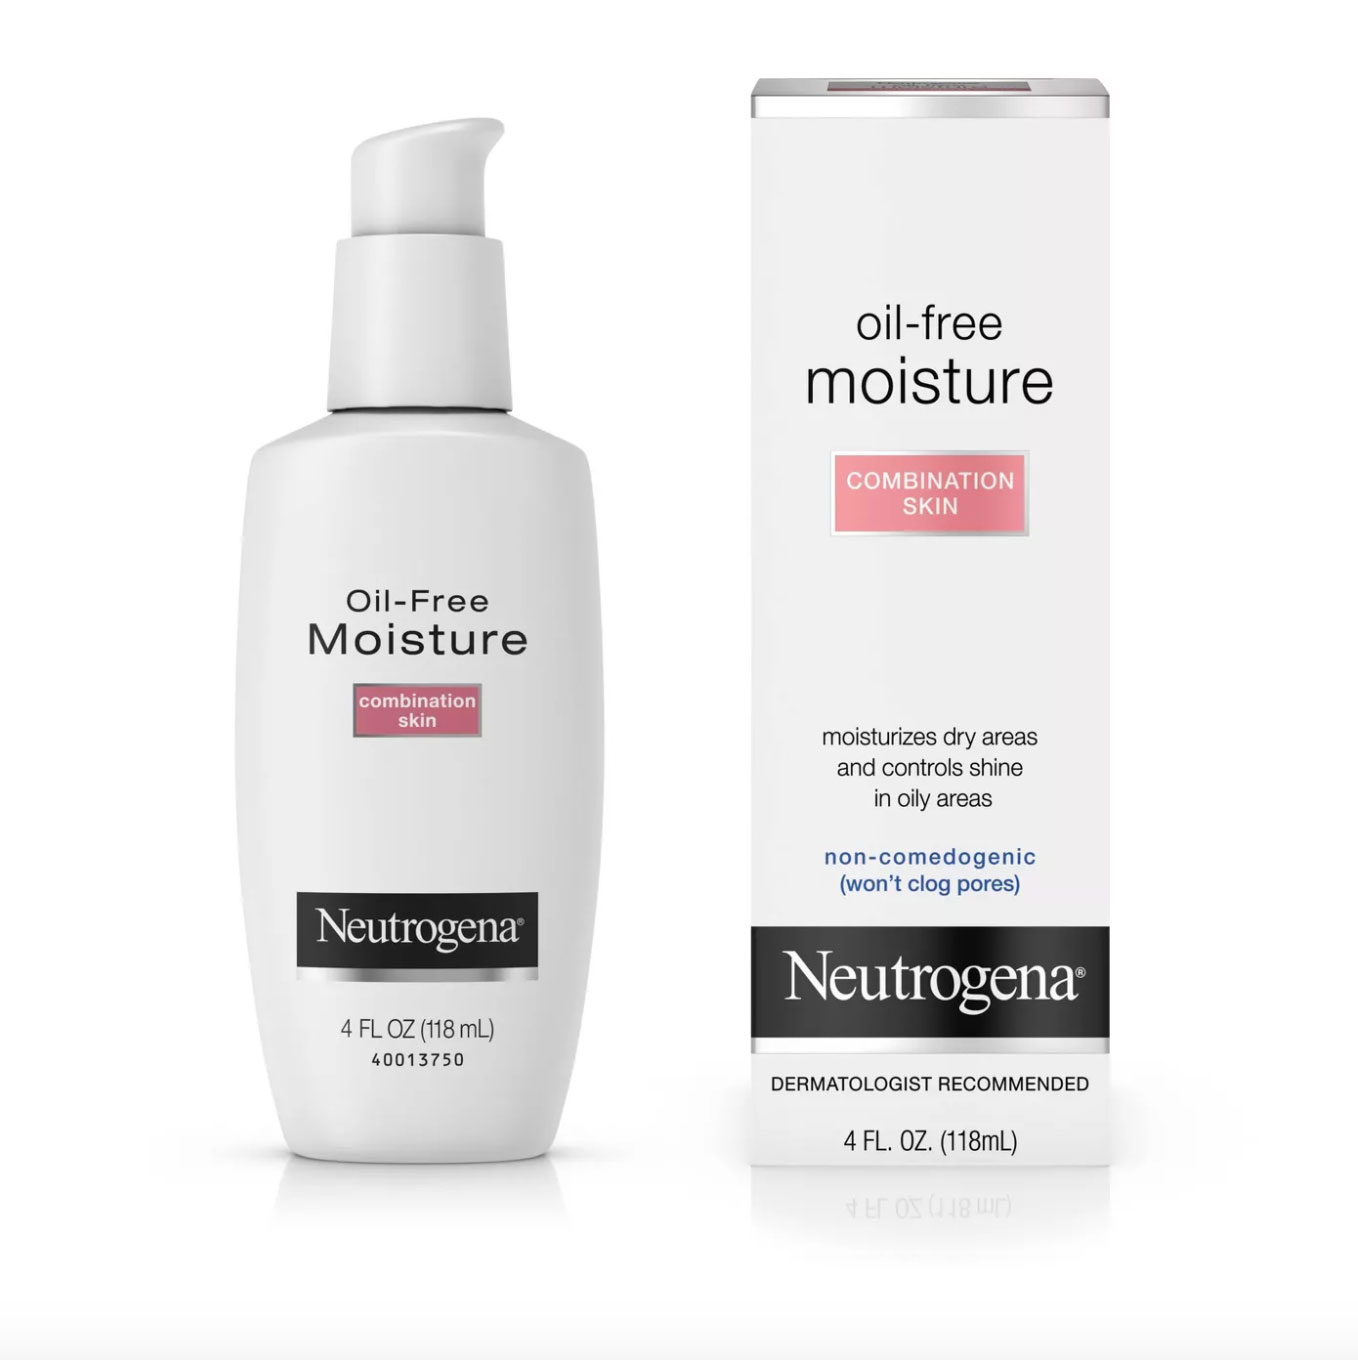 Neutrogena Oil Free Face & Neck Moisturizer for Combination Skin